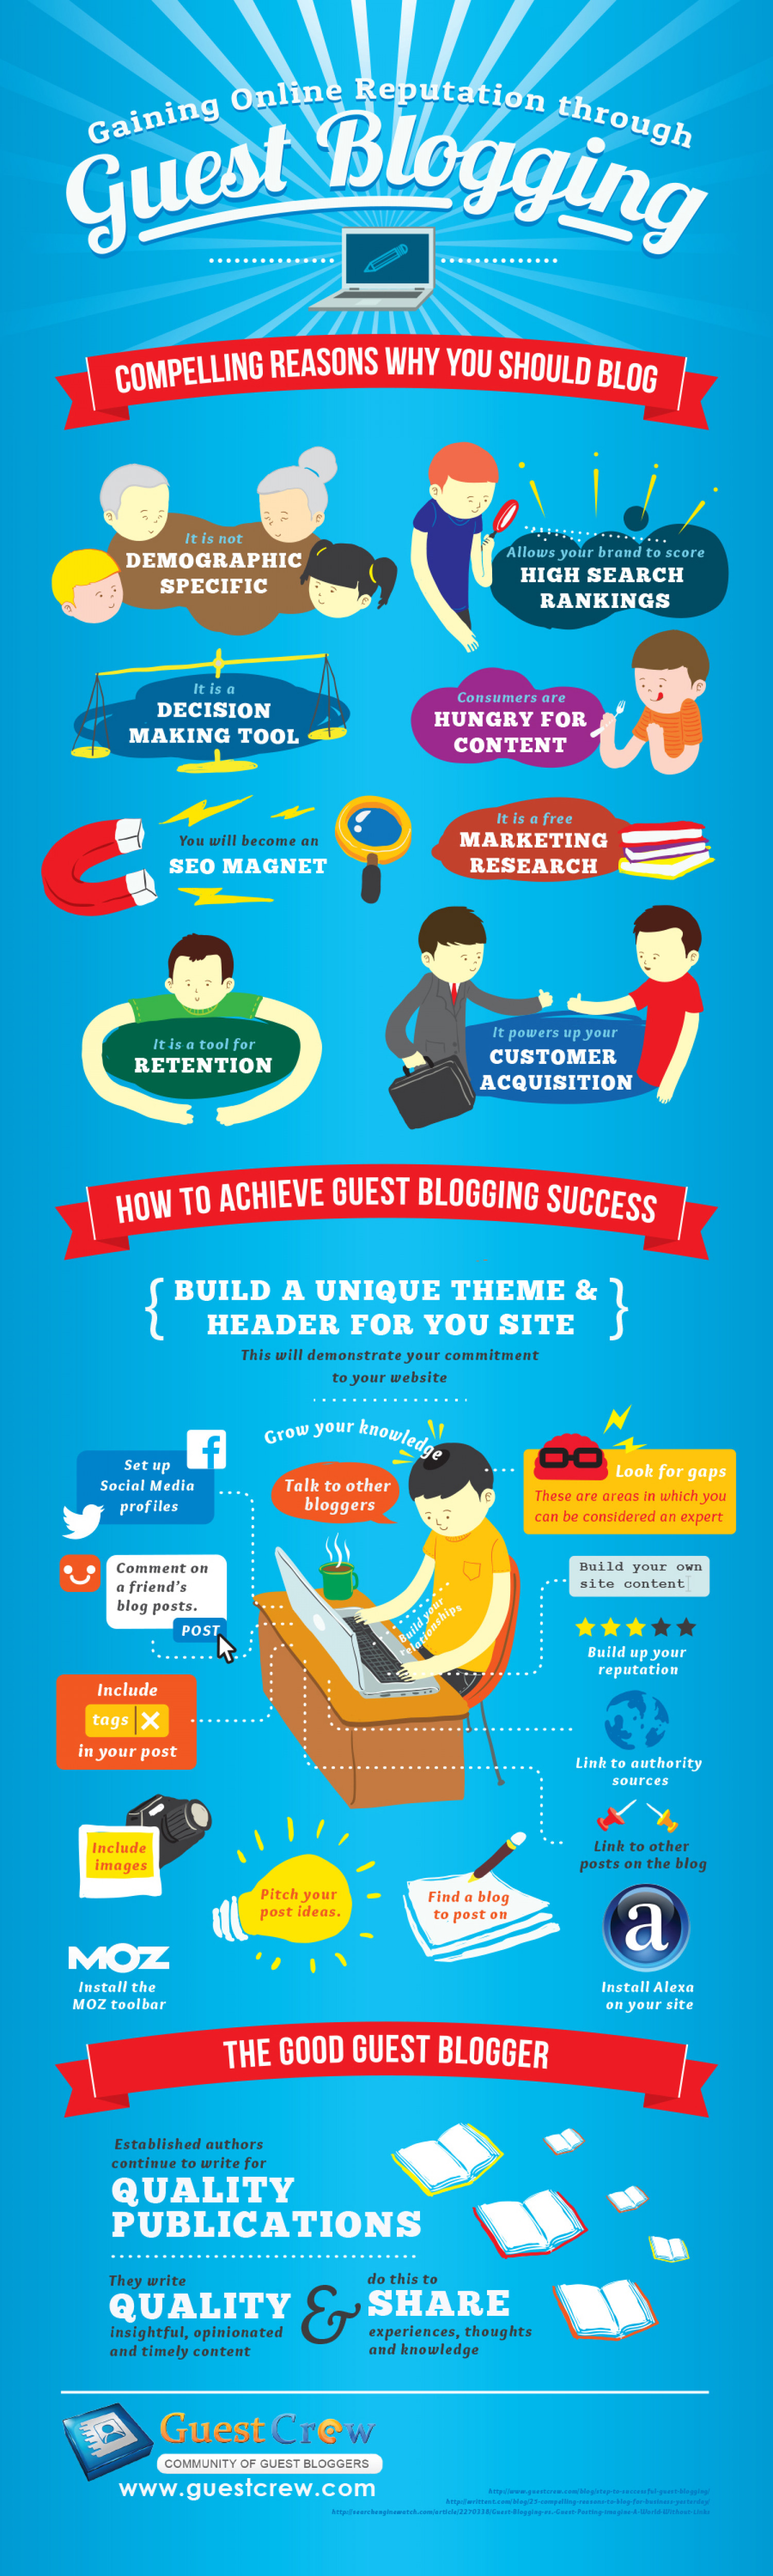 Gaining Online Reputation Through Guest Blogging Infographic